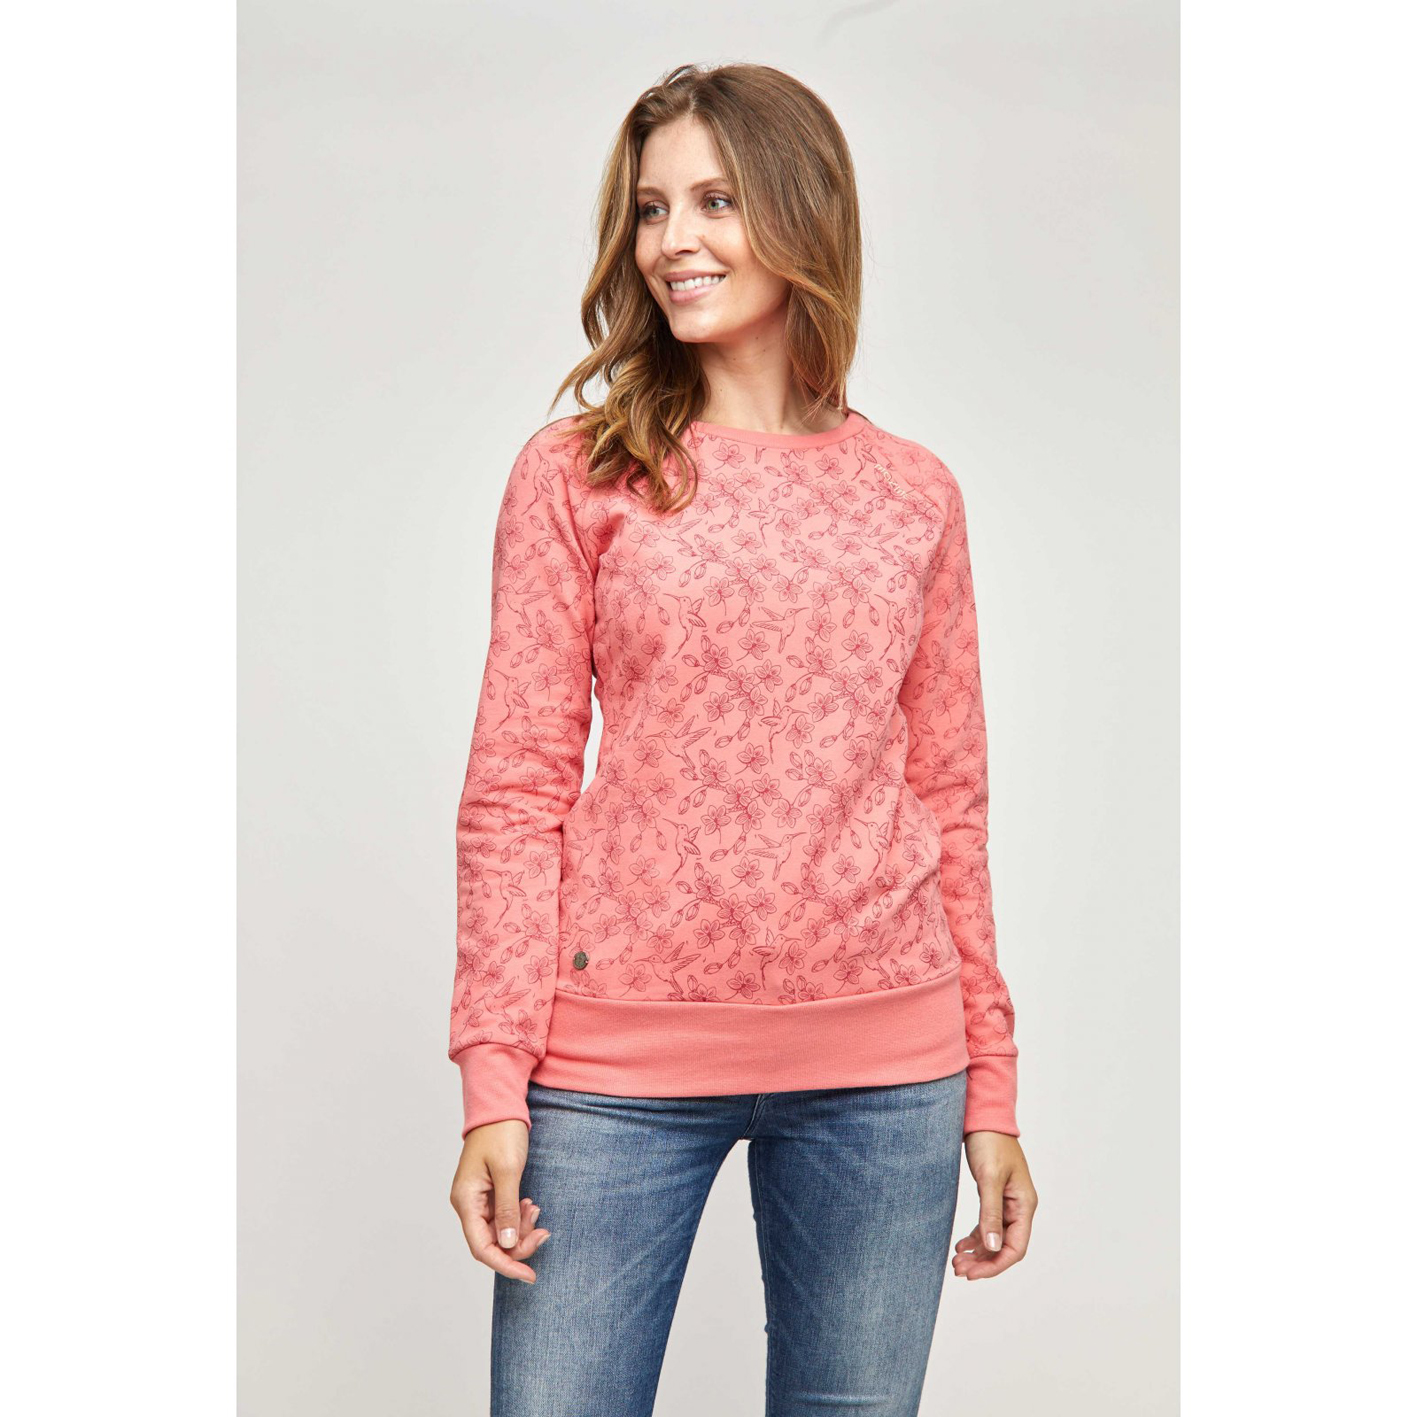 Mazine Tanami Sweater salmon